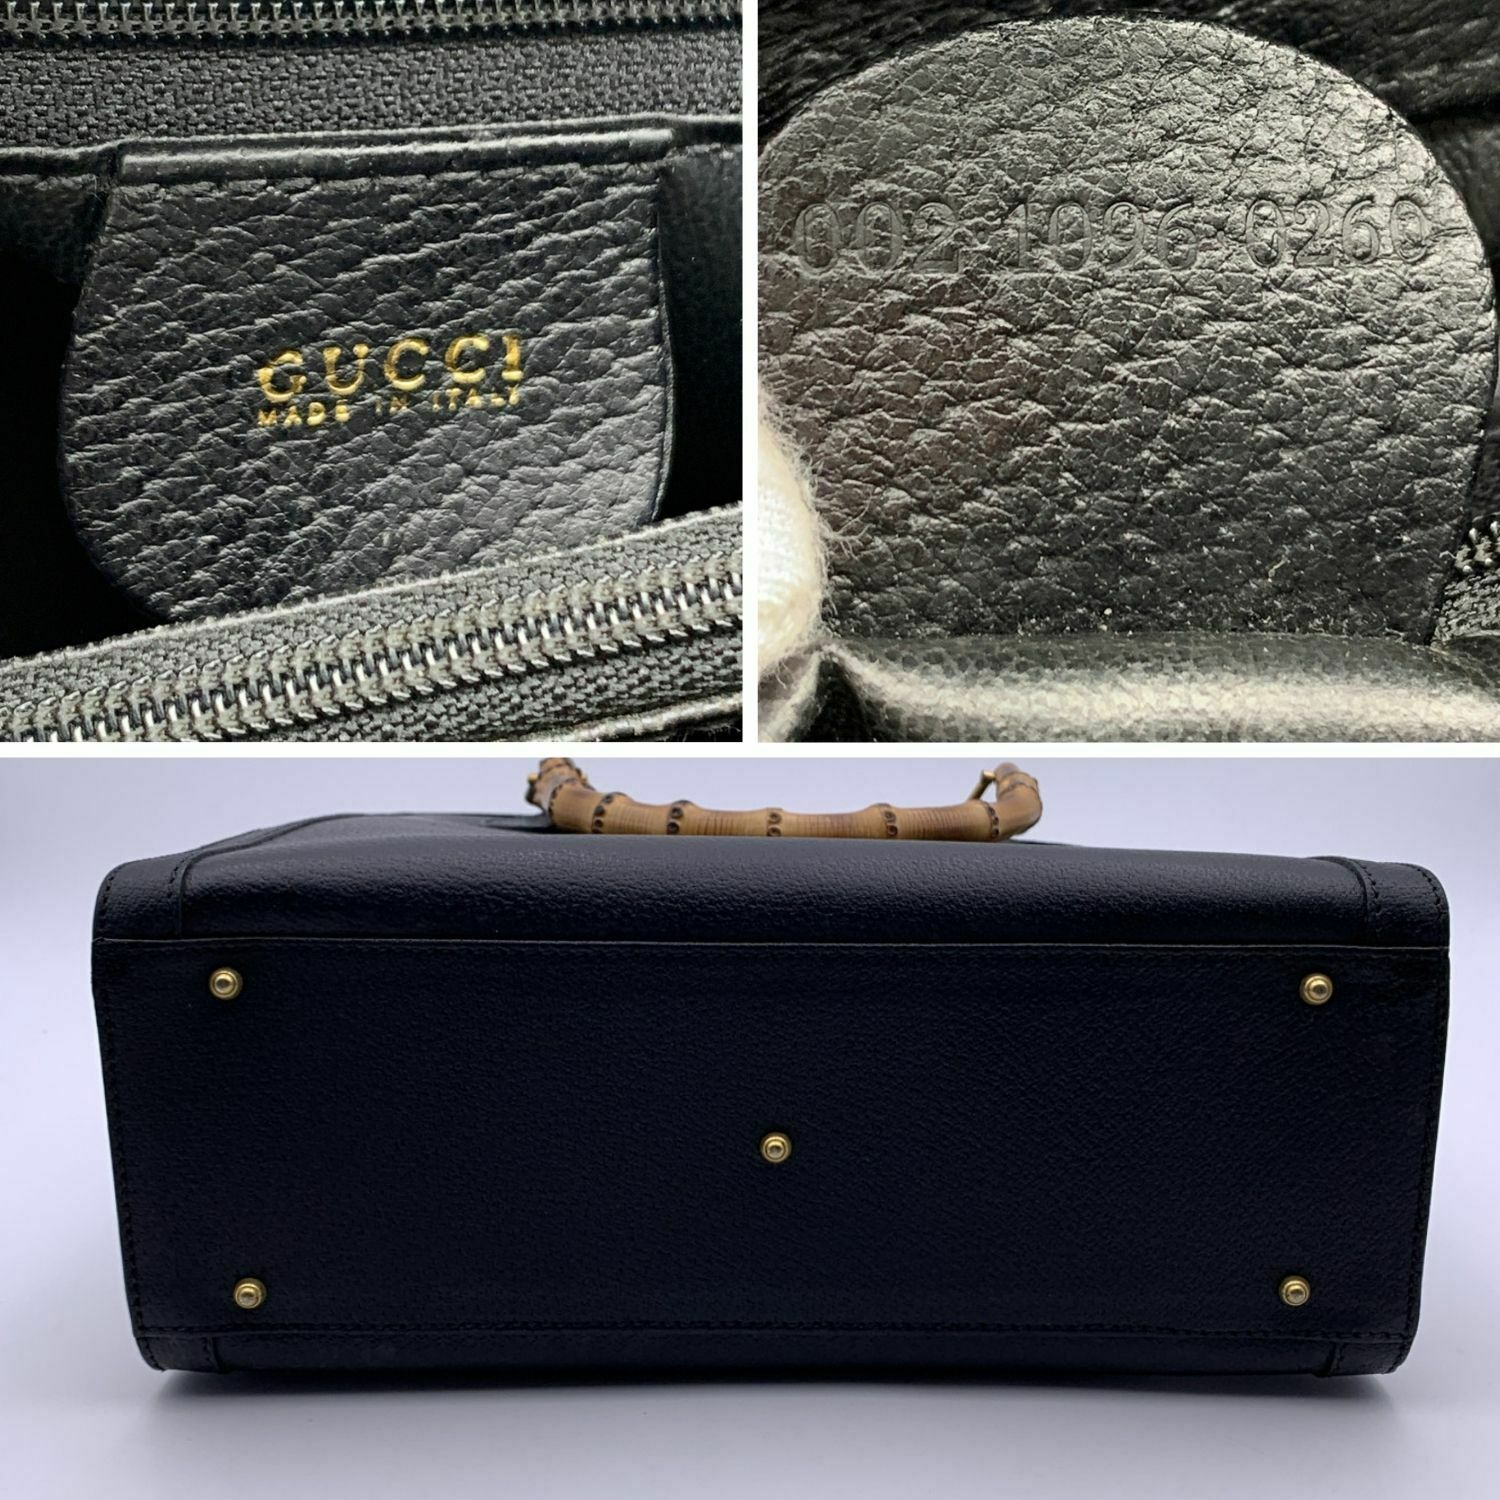 Authentic Gucci Vintage Black Leather Bamboo Prin… - image 8